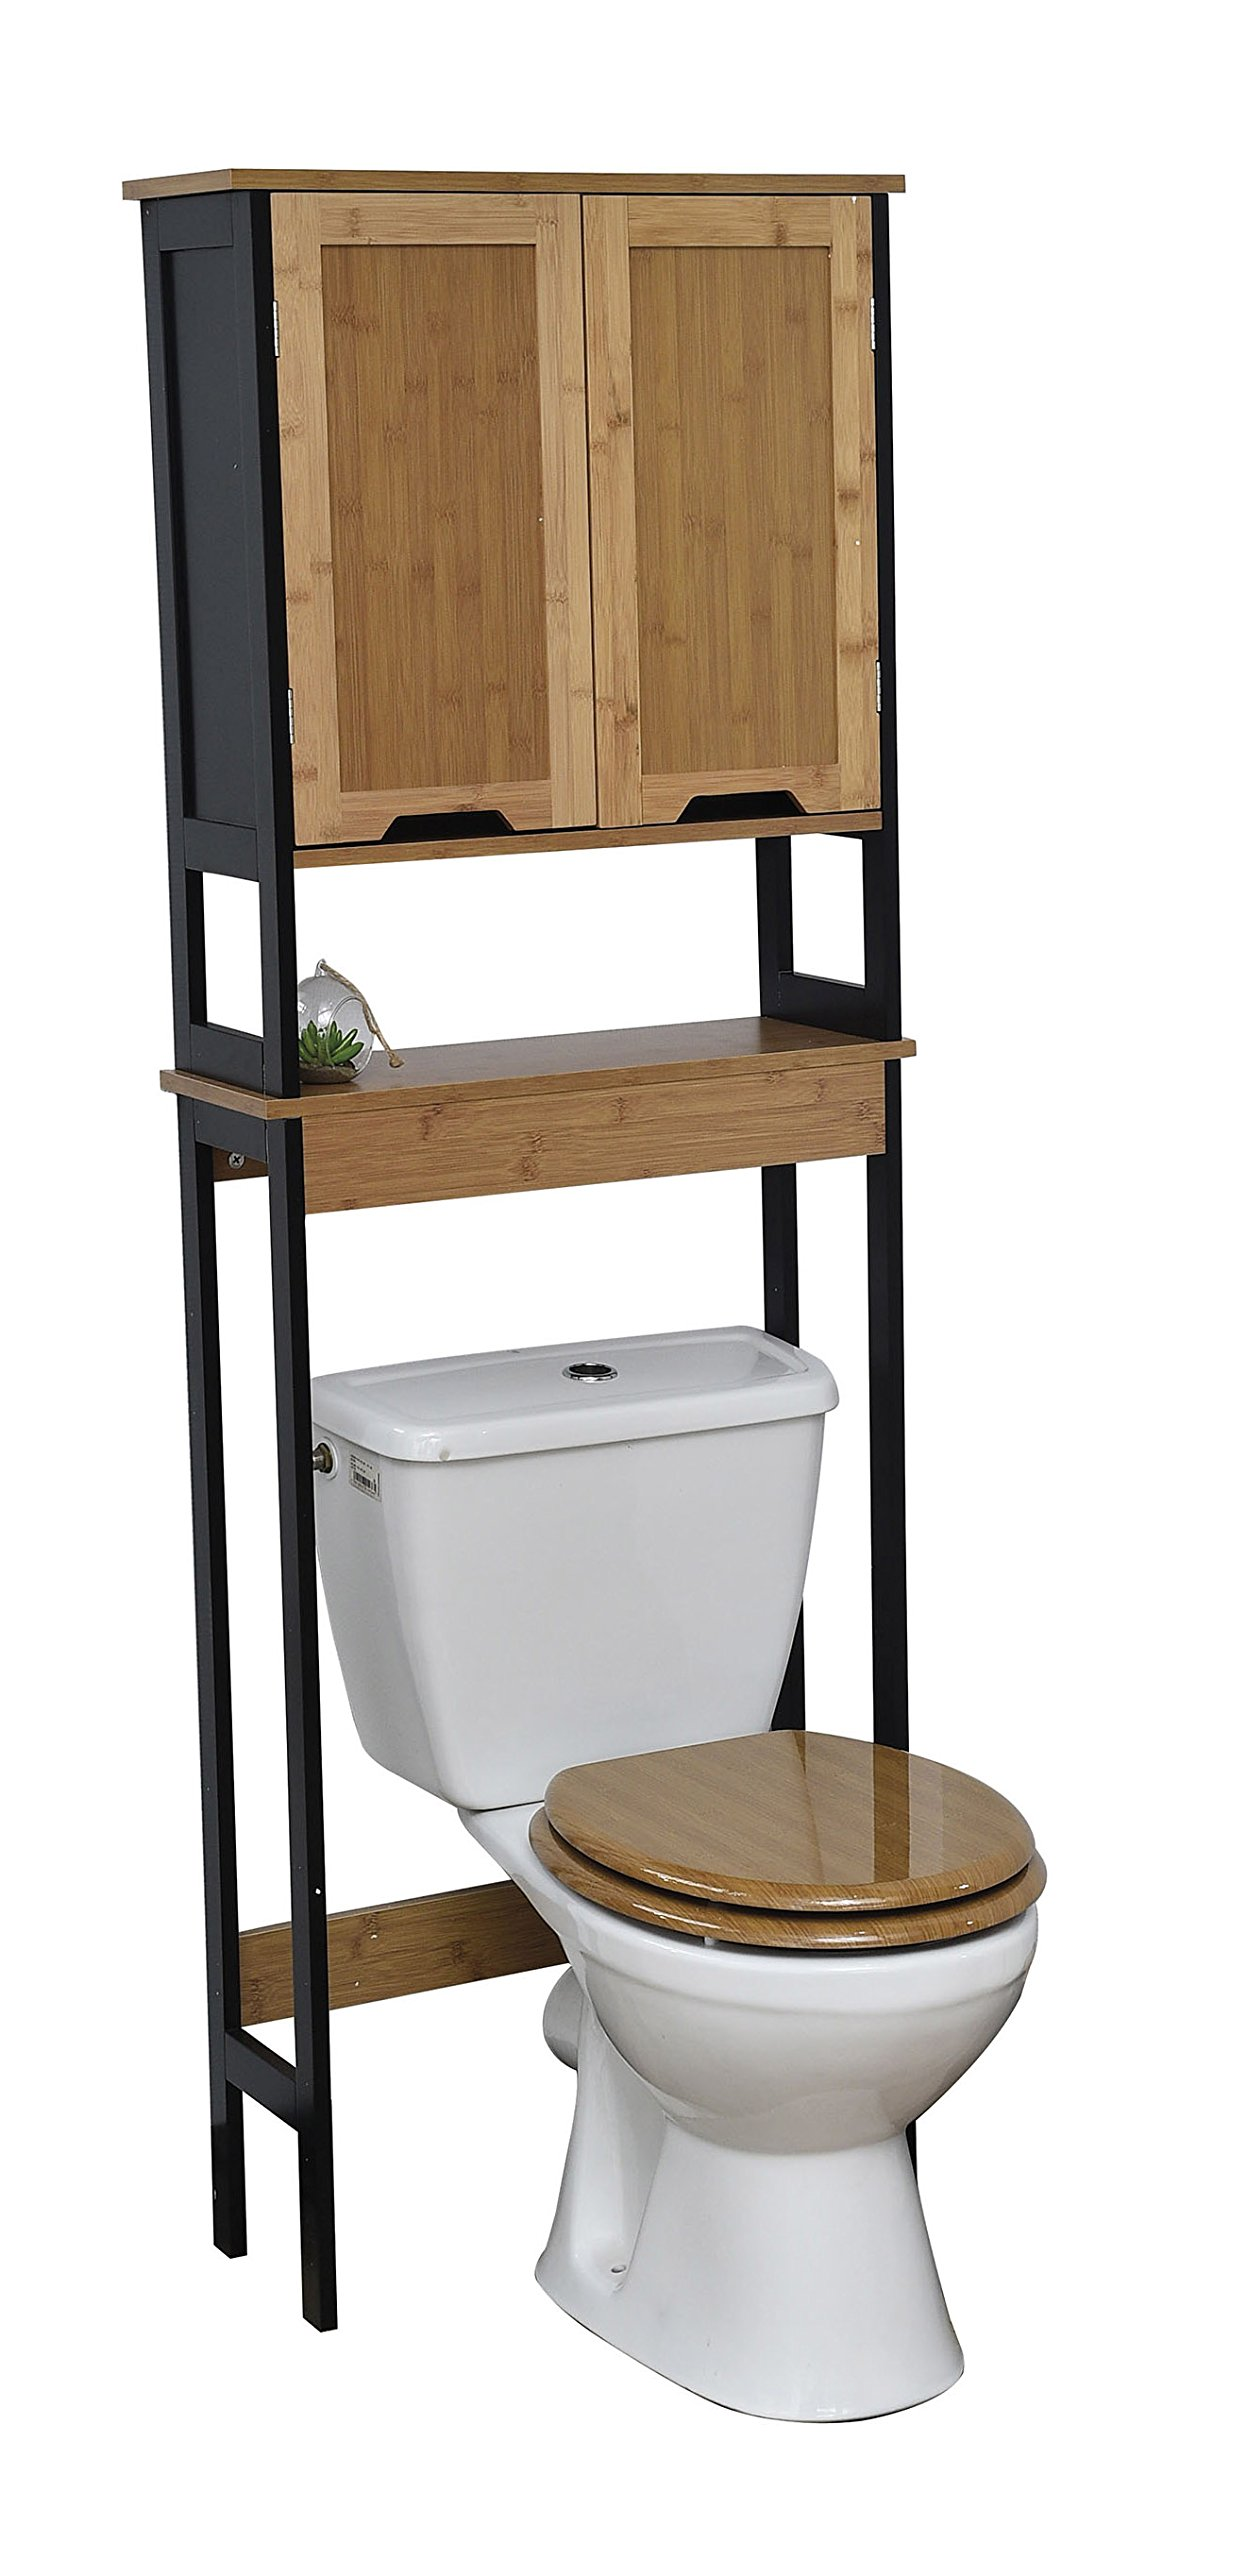 Evideco Free Standing Over The Toilet Phuket Space Saver Cabinet Black and Bamboo